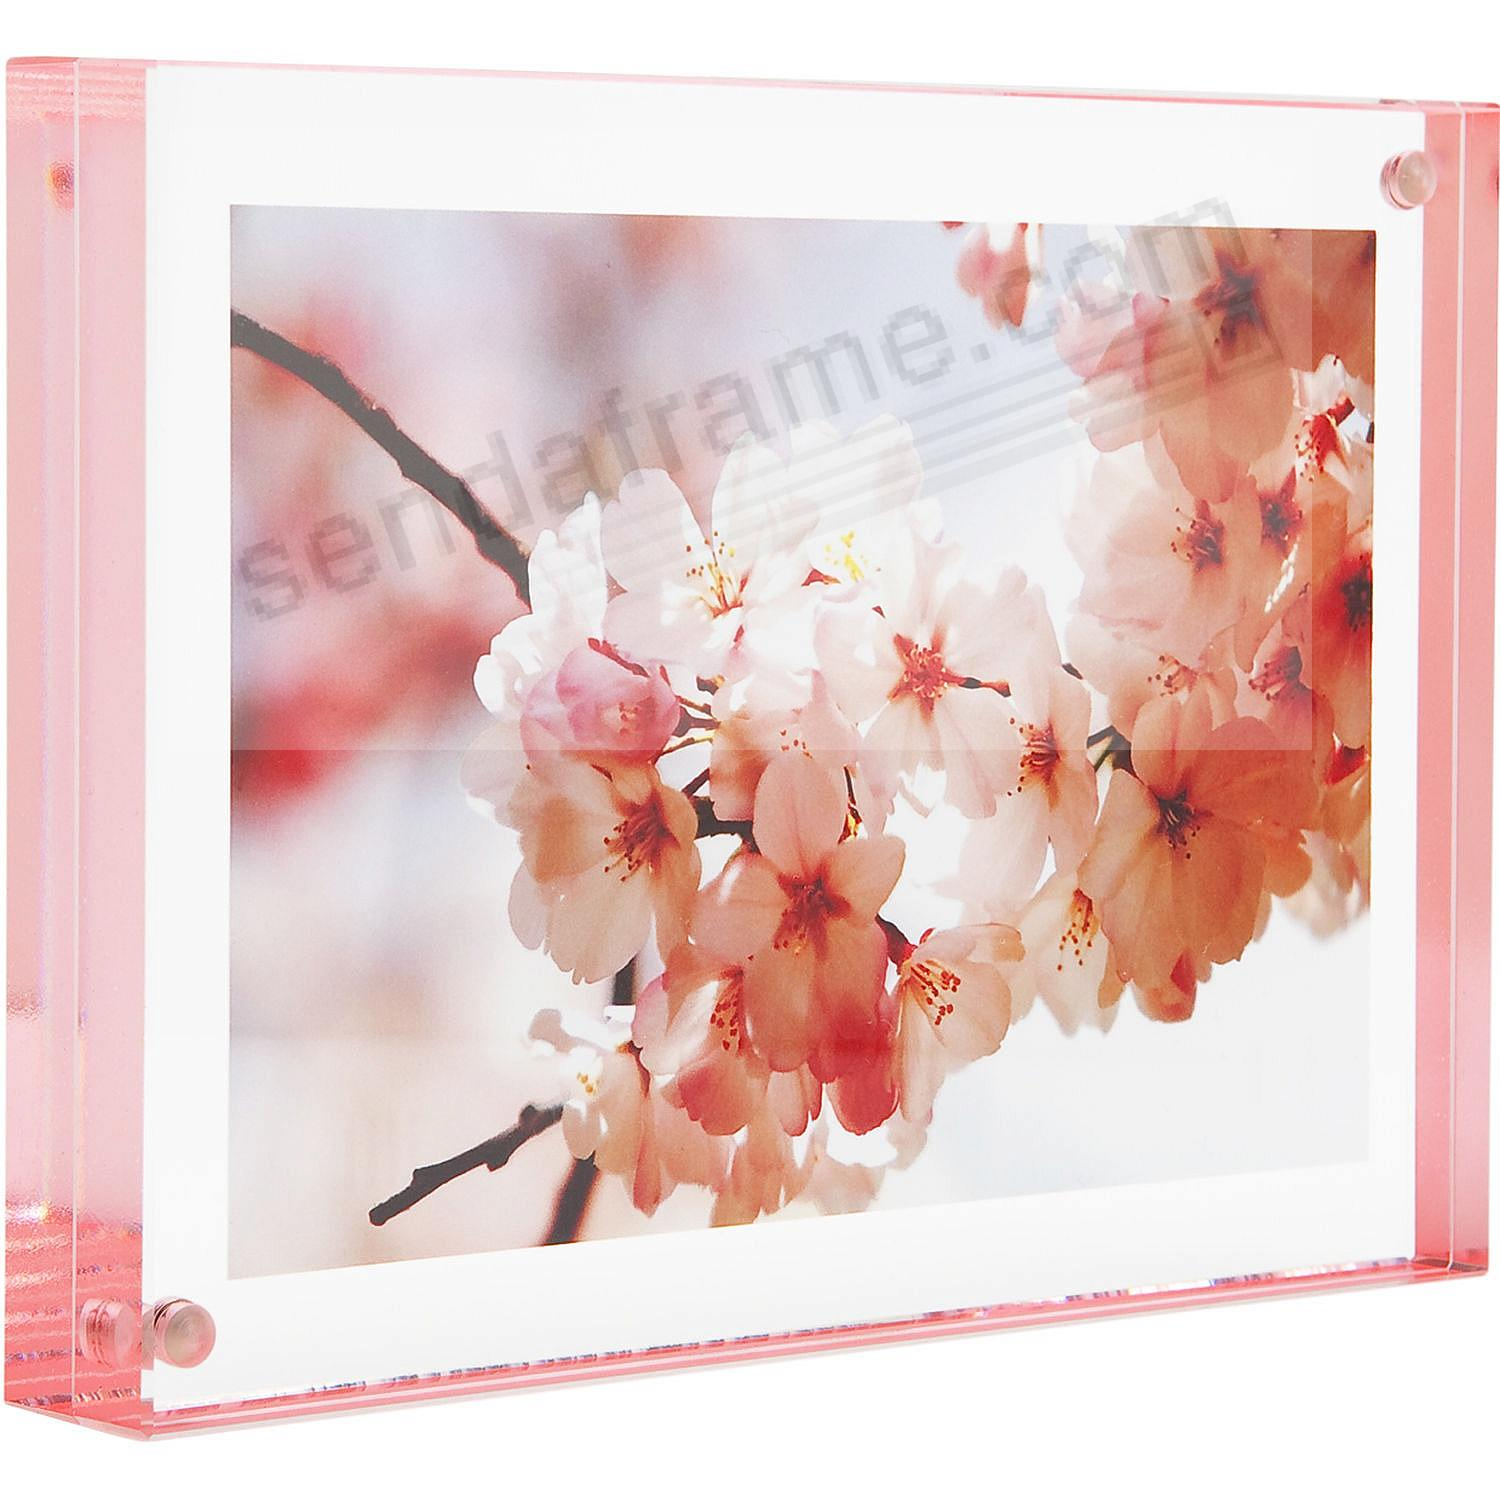 The MAGNET FRAME with Pink Edge by Canetti®